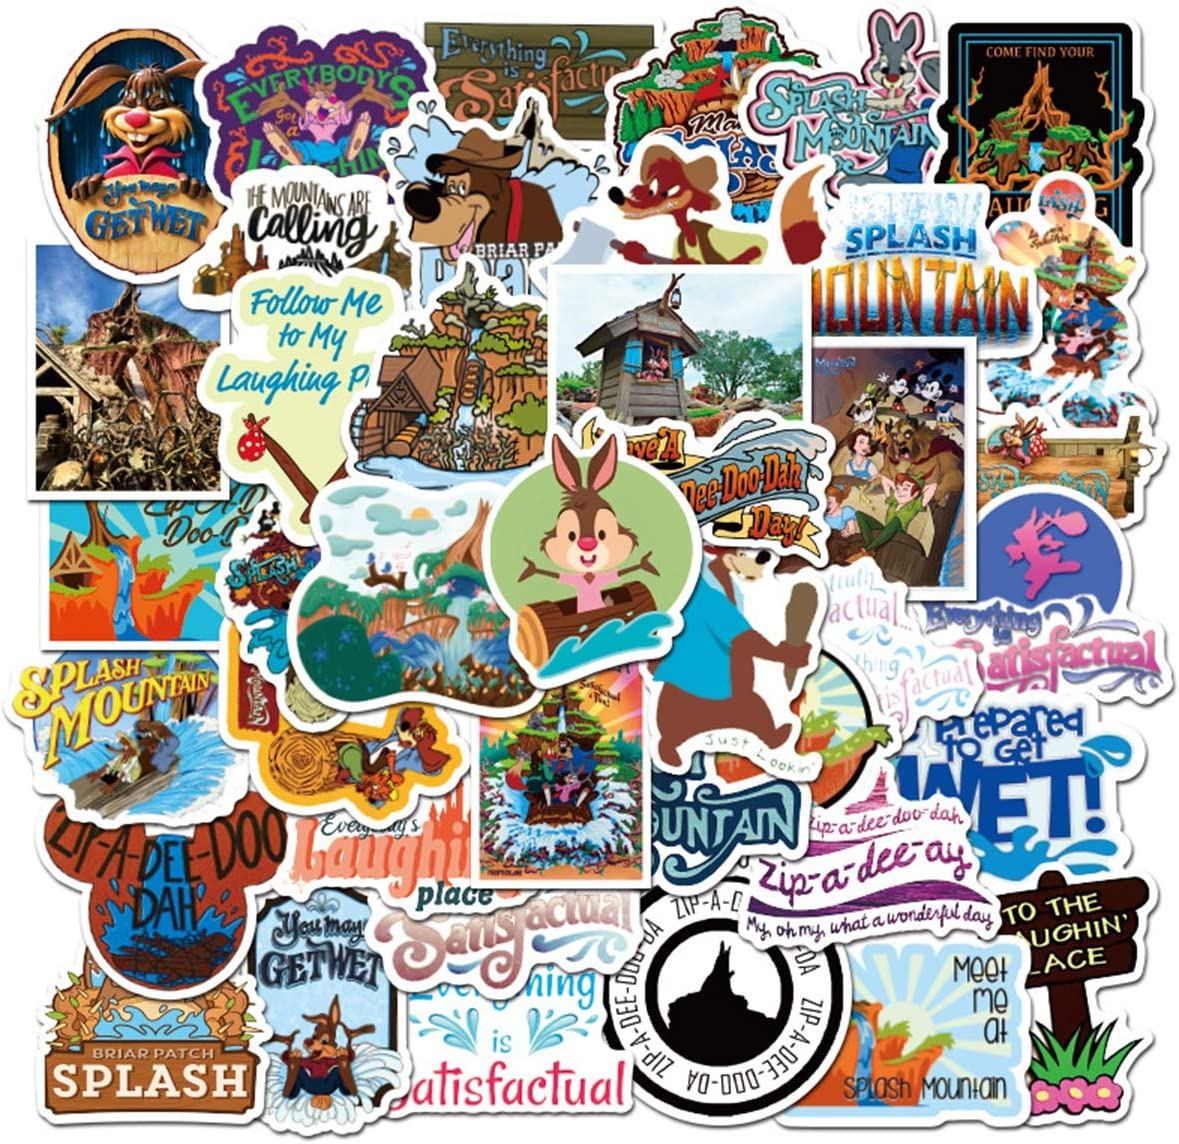 50pcs Splash Mountain Stickers Laptop Adult Sticker Waterproof Stickers Luggage Skateboard Water Bottle Stickers Decal Bicycle Bumper Snowboard Decorate (Splash Mountain